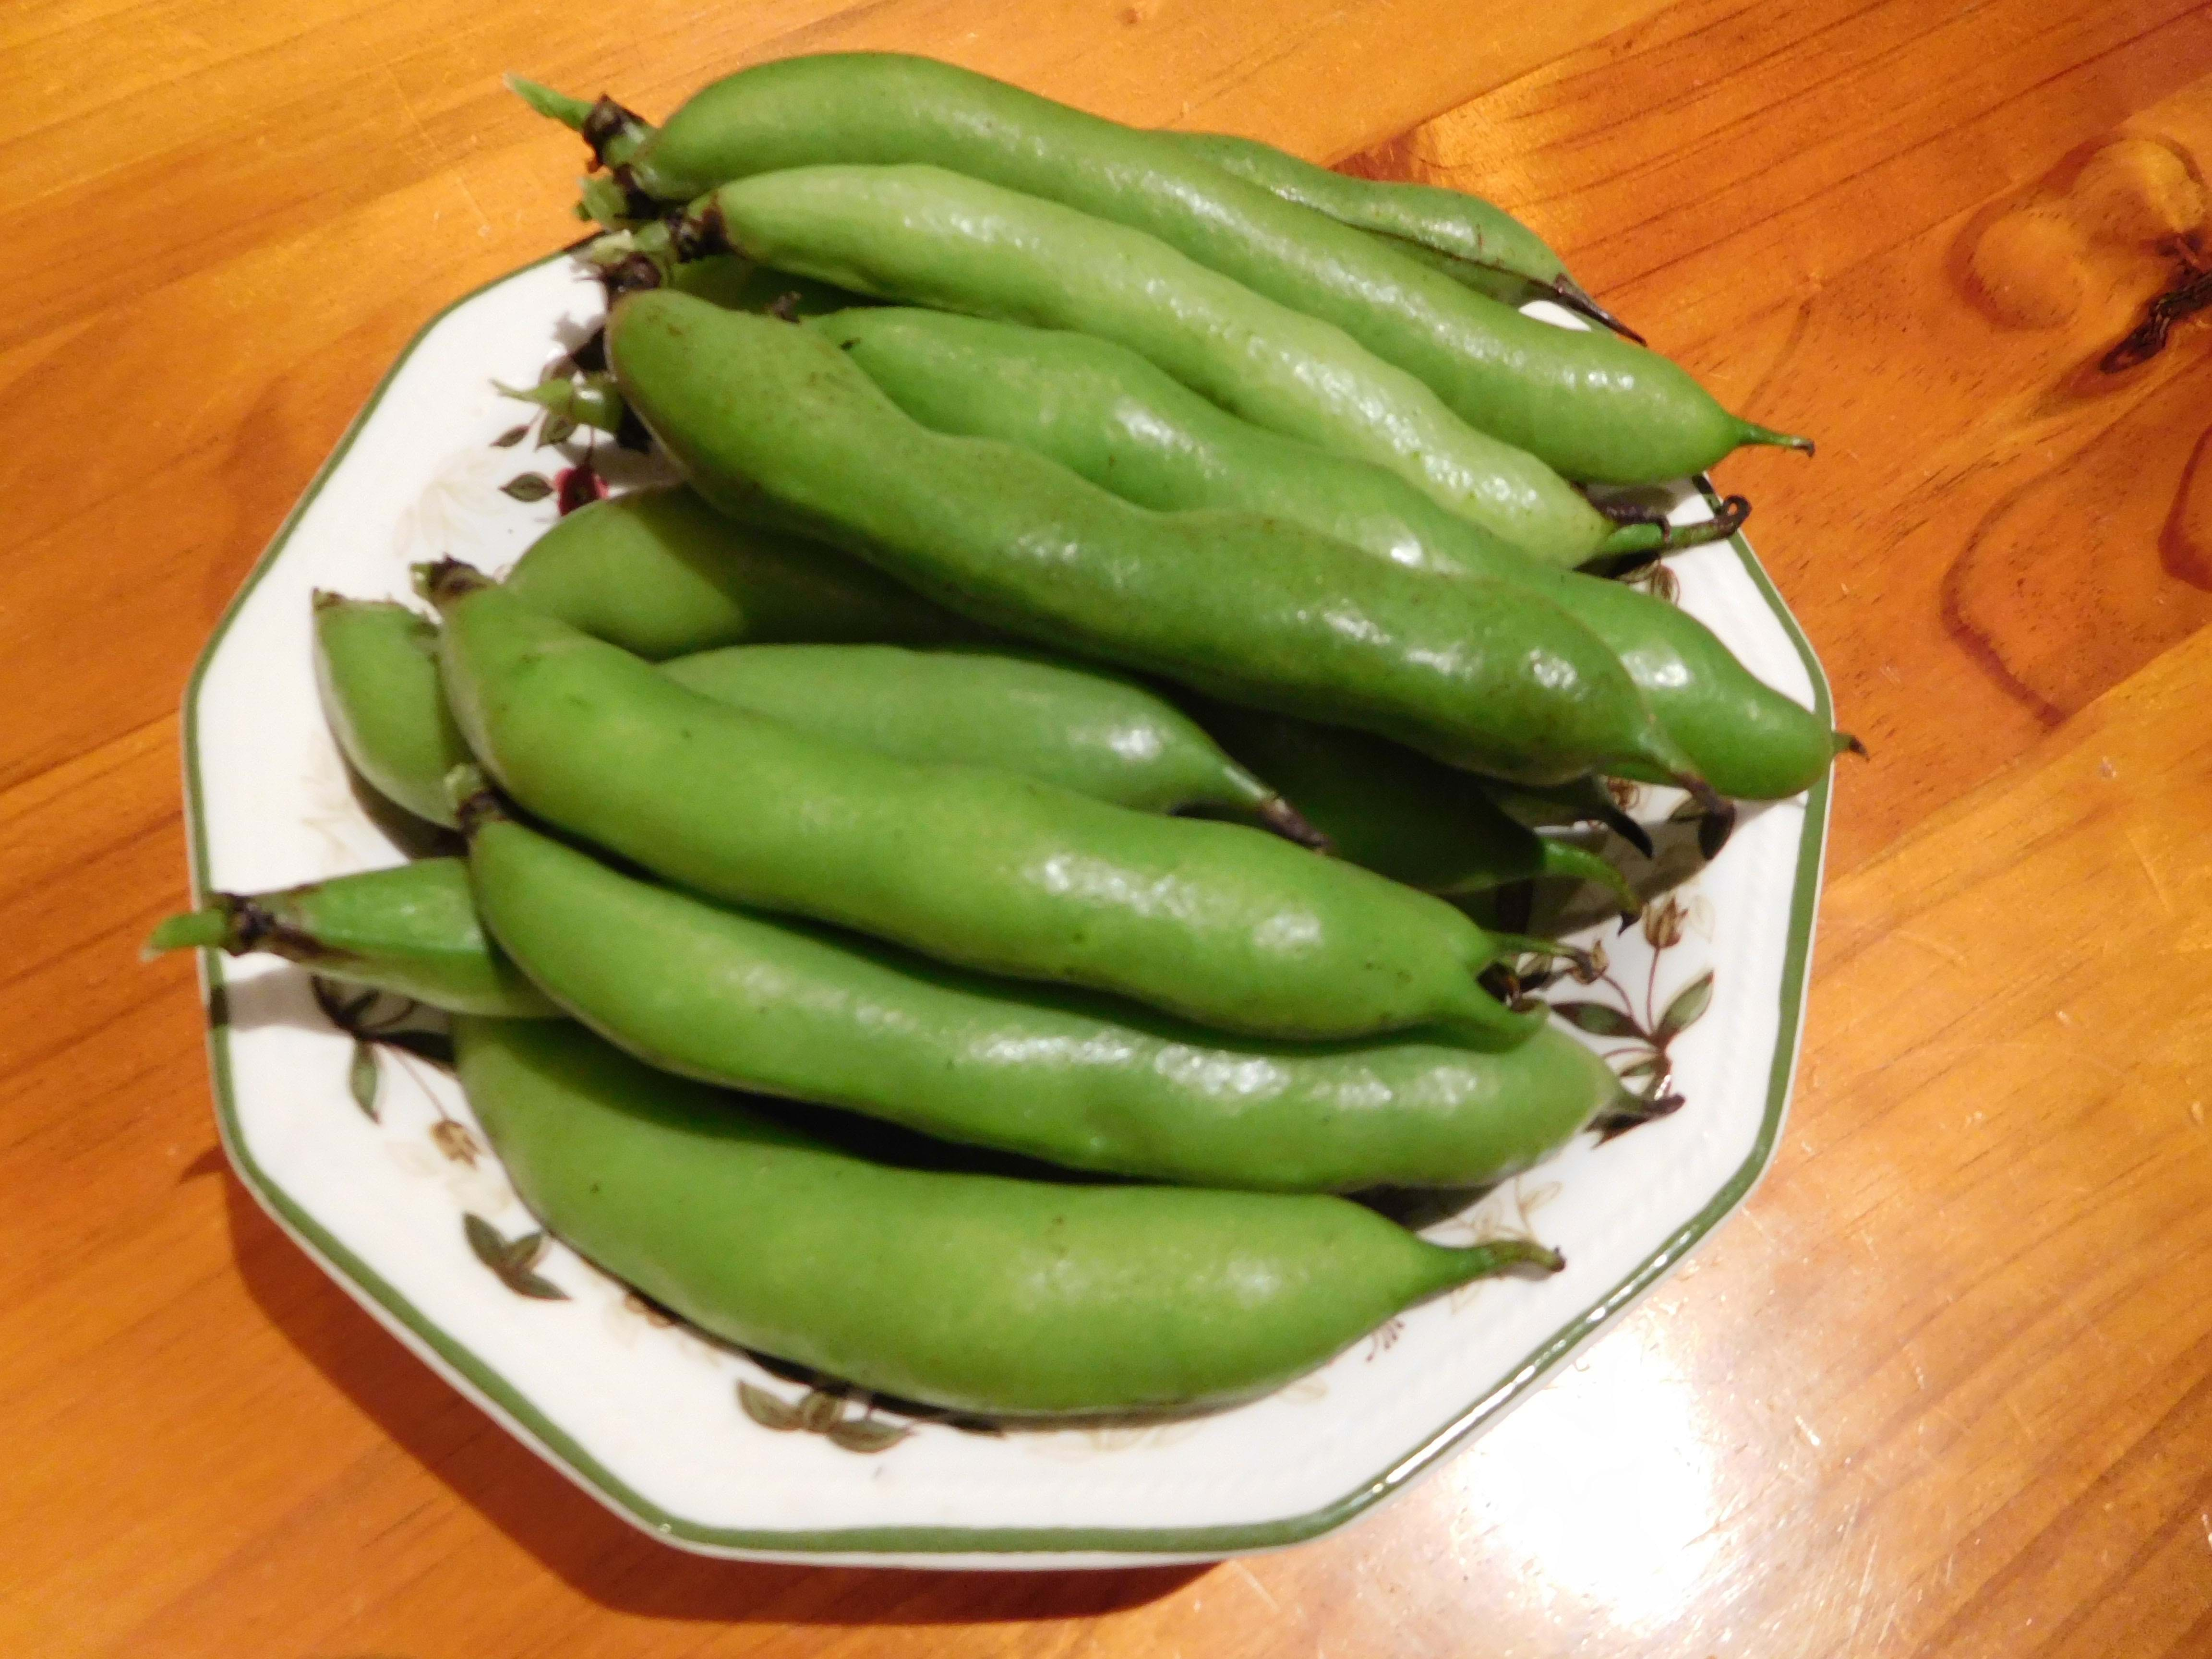 My first broad bean harvest!